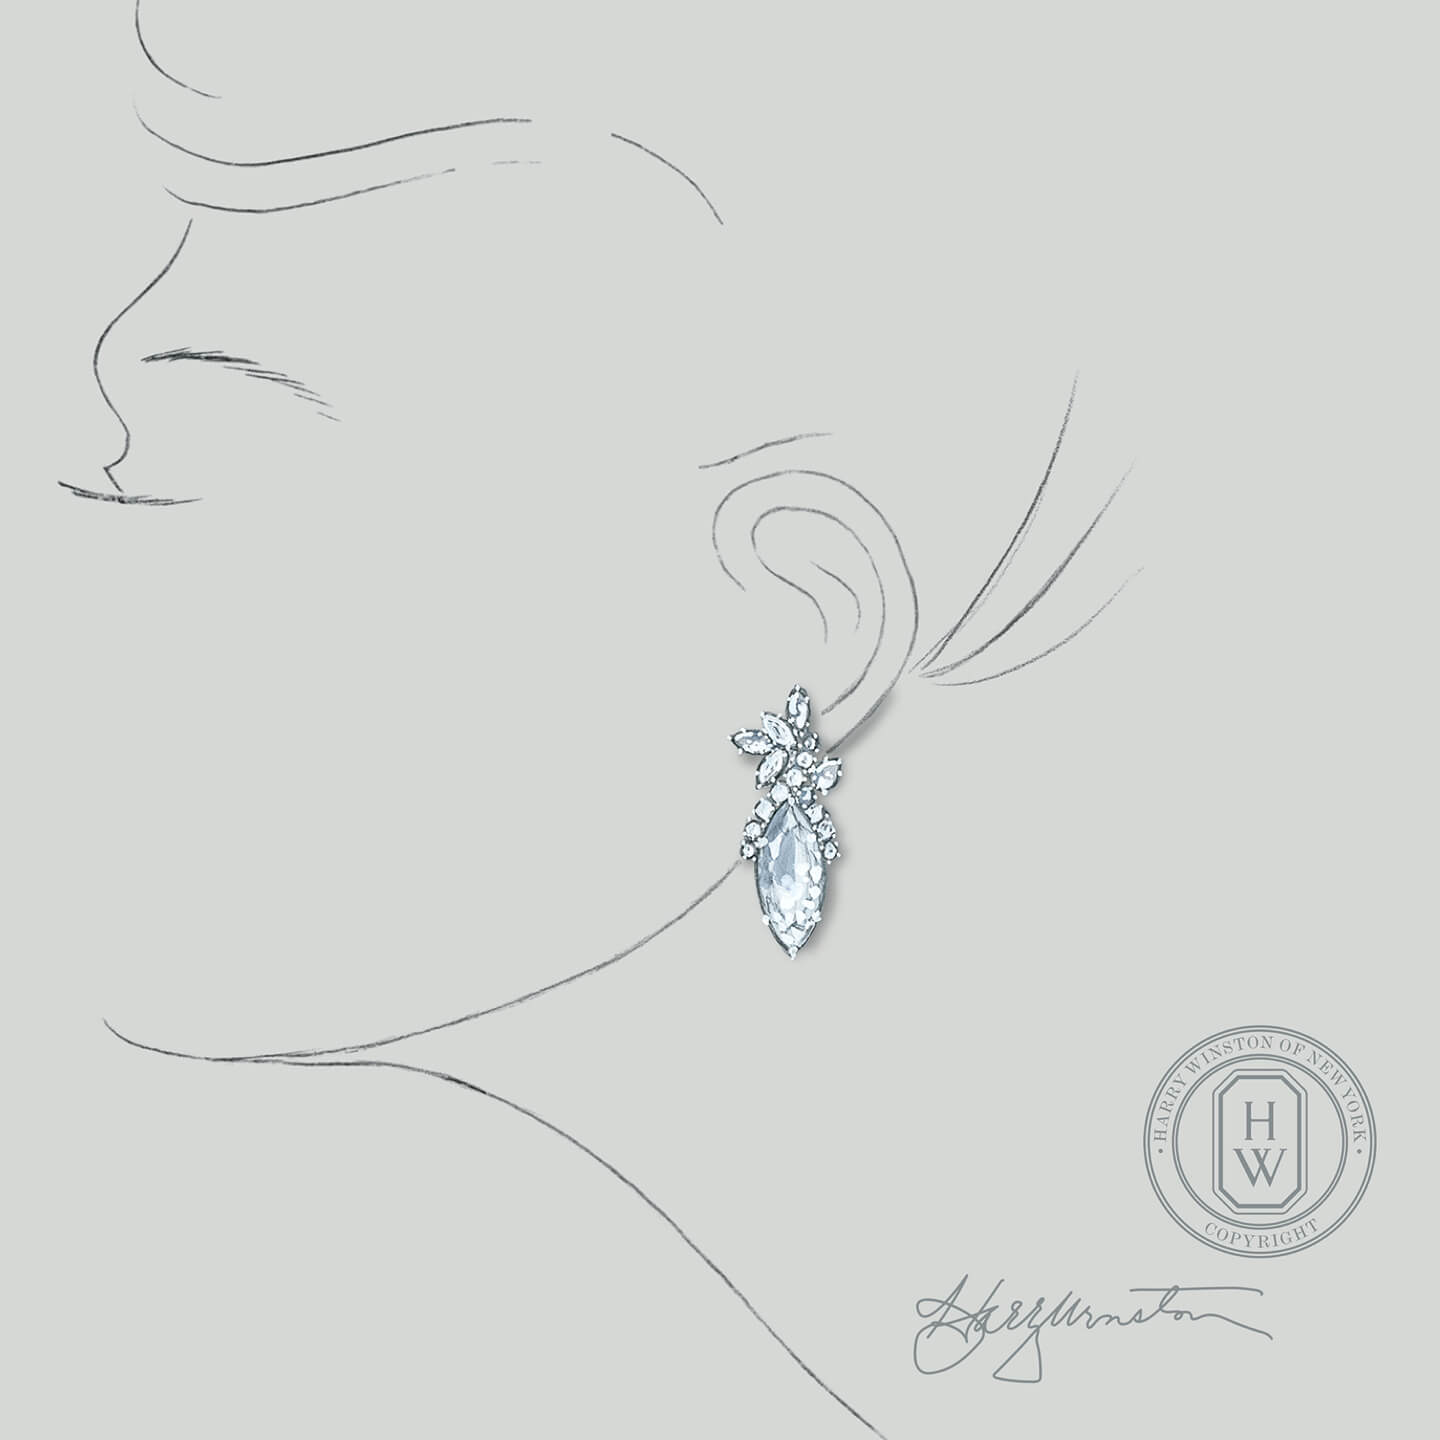 Sketch of an exquisite diamond earring from the Legacy Collection by Harry Winston